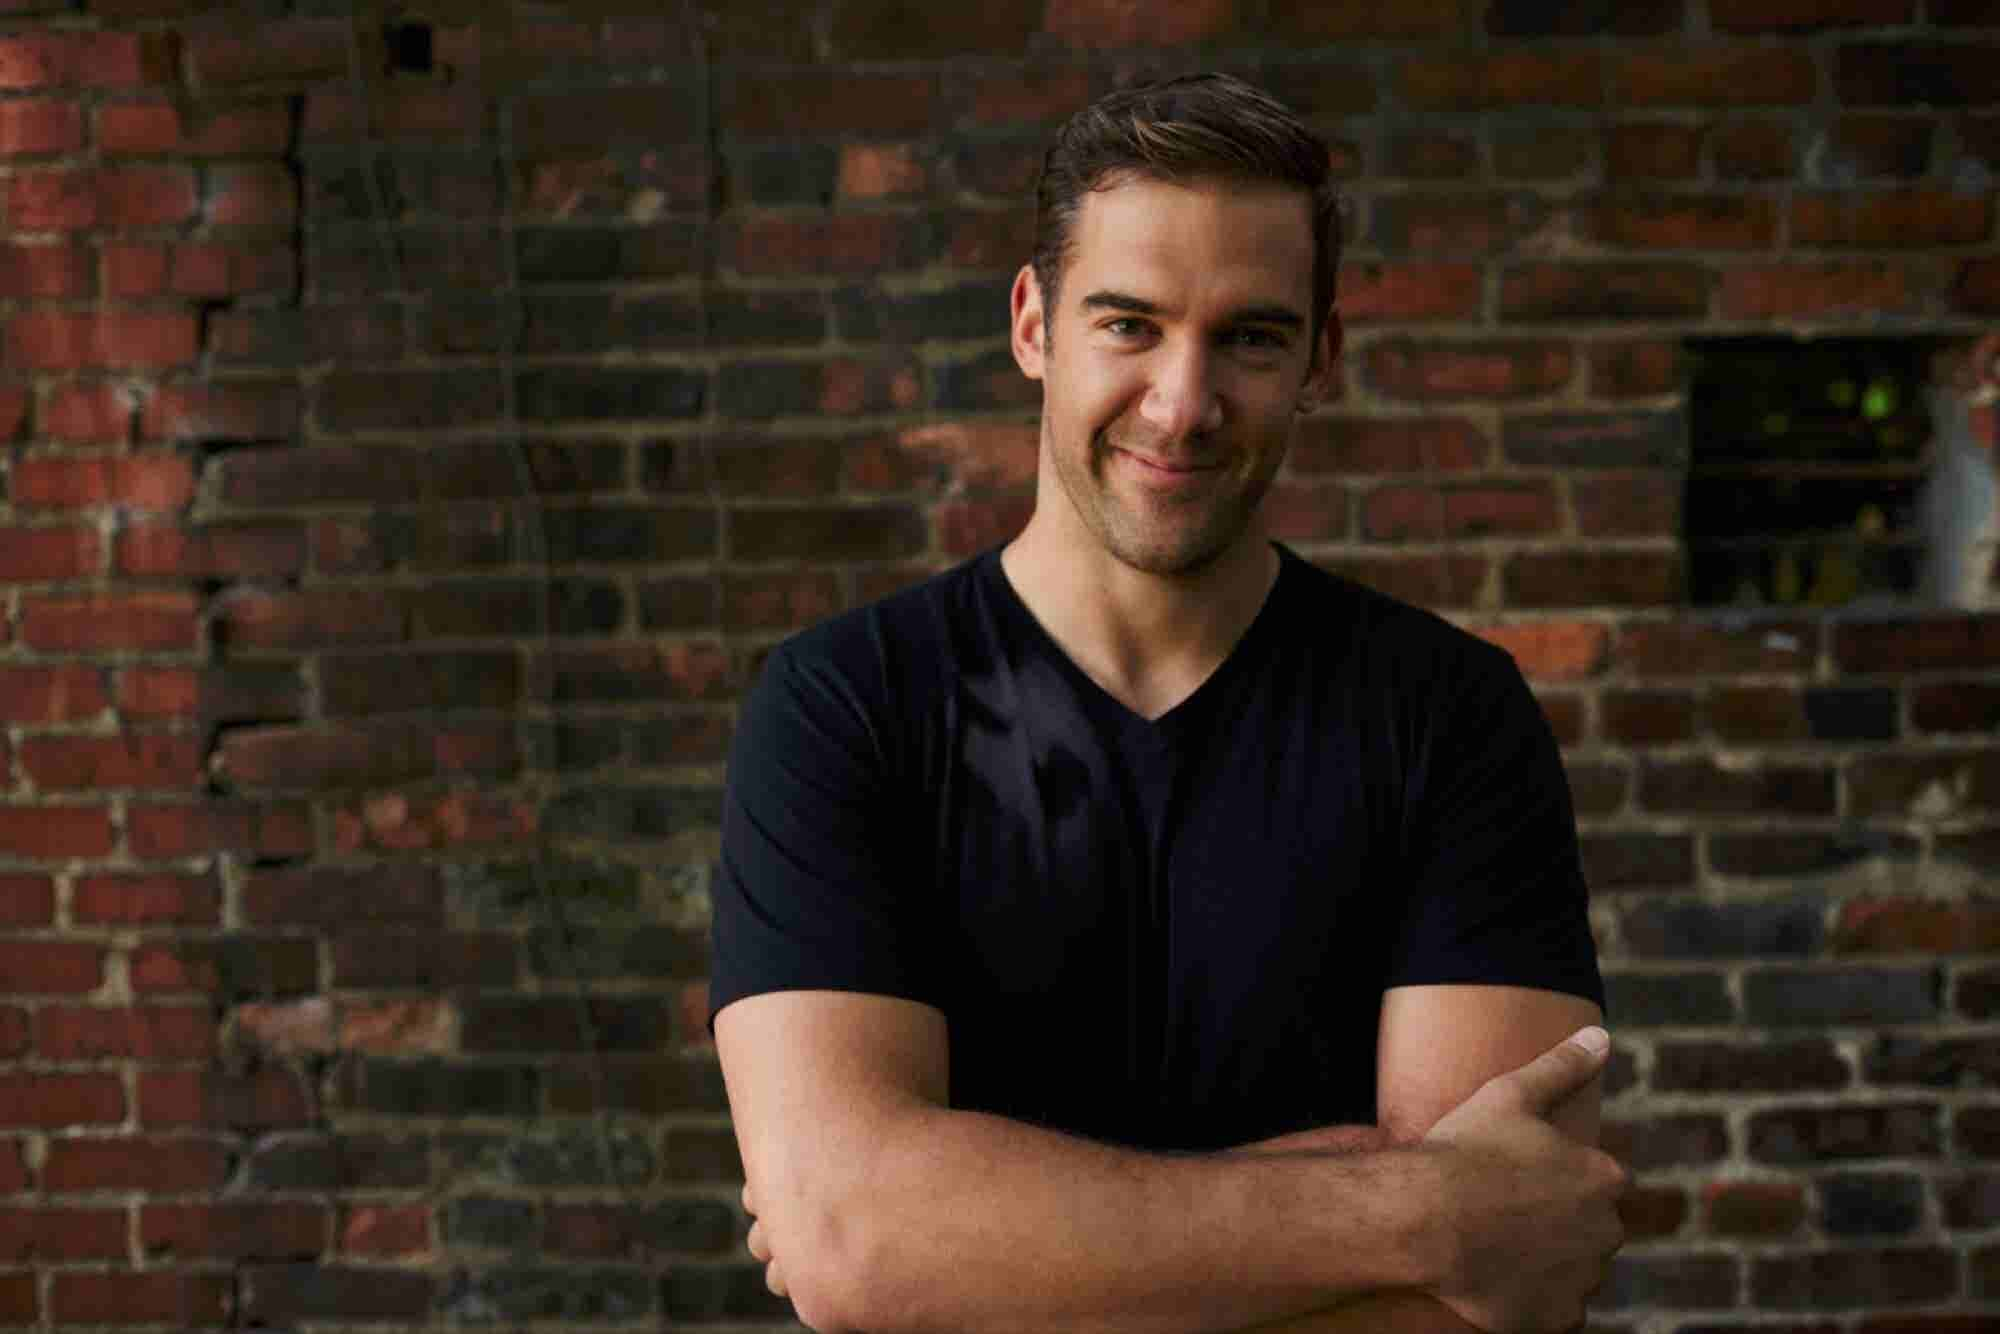 Lewis Howes' 7 Tips for Achieving Your Dreams